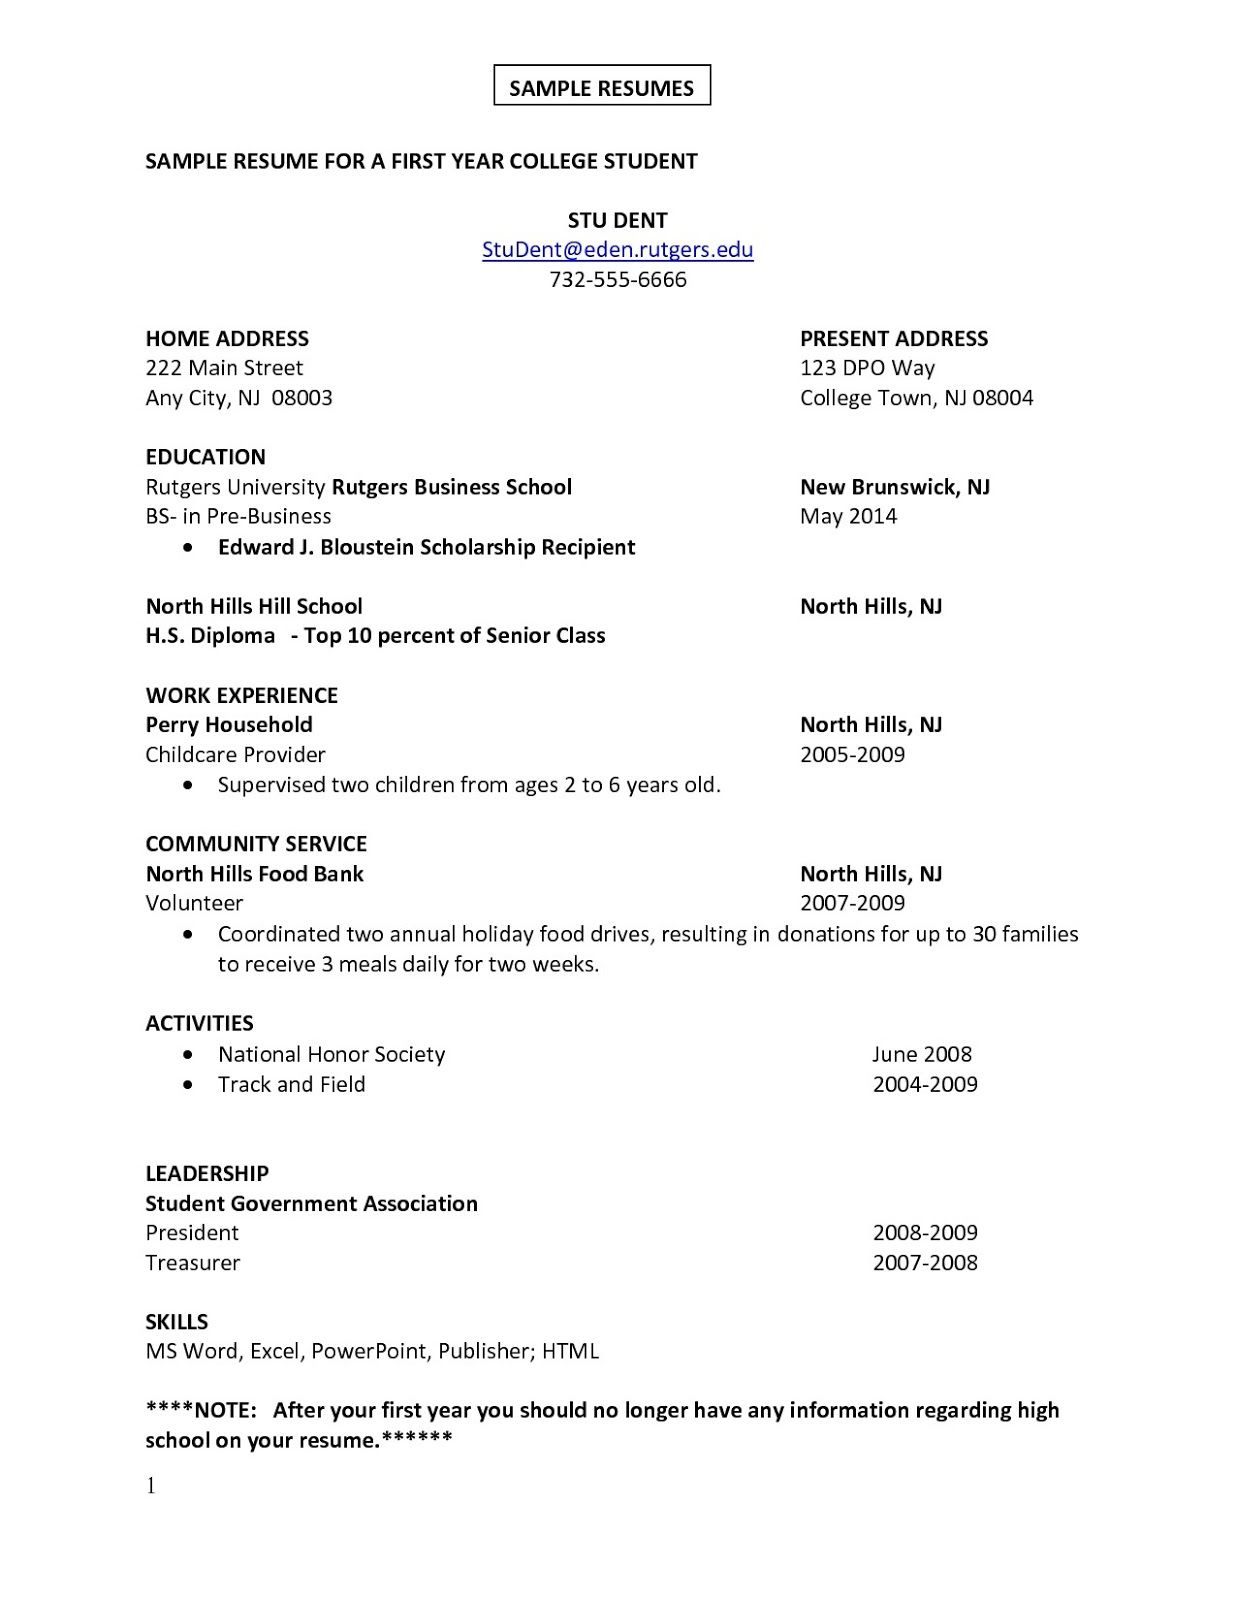 First Job Sample Resume | Sample Resumes | Sample Resumes ...